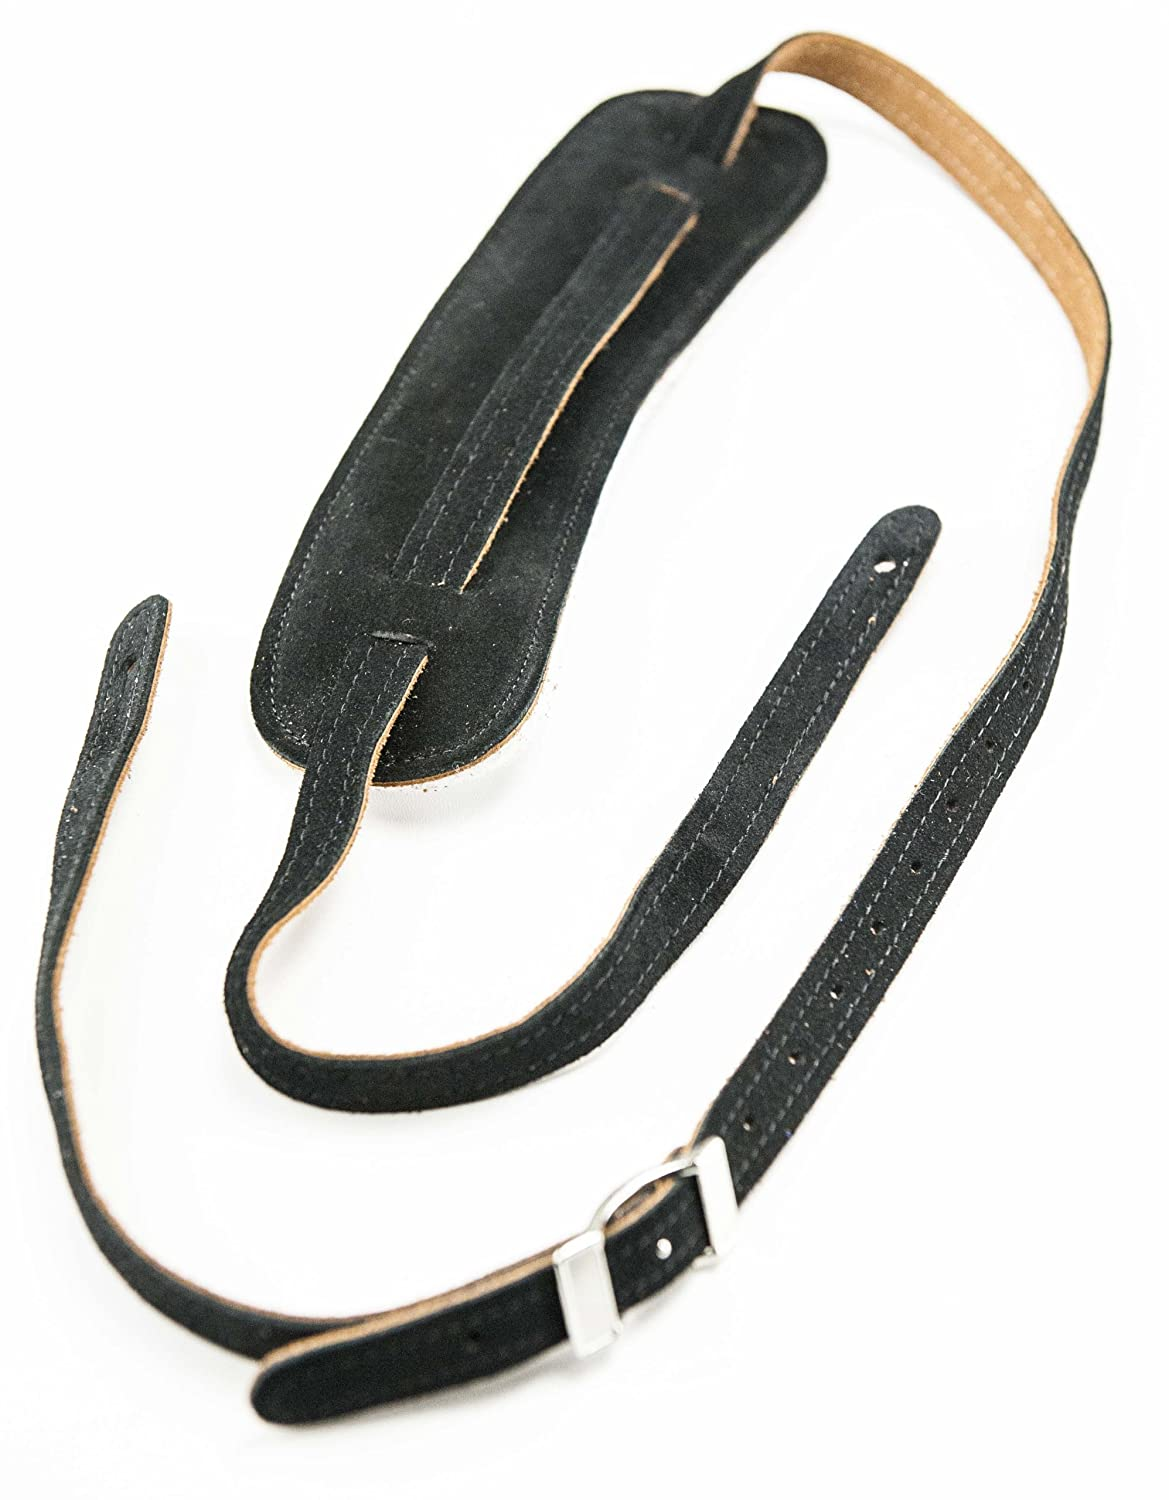 Perris Leathers CBSS-202 Vintage Suede Guitar Strap with Pad Perris Leathers LTD